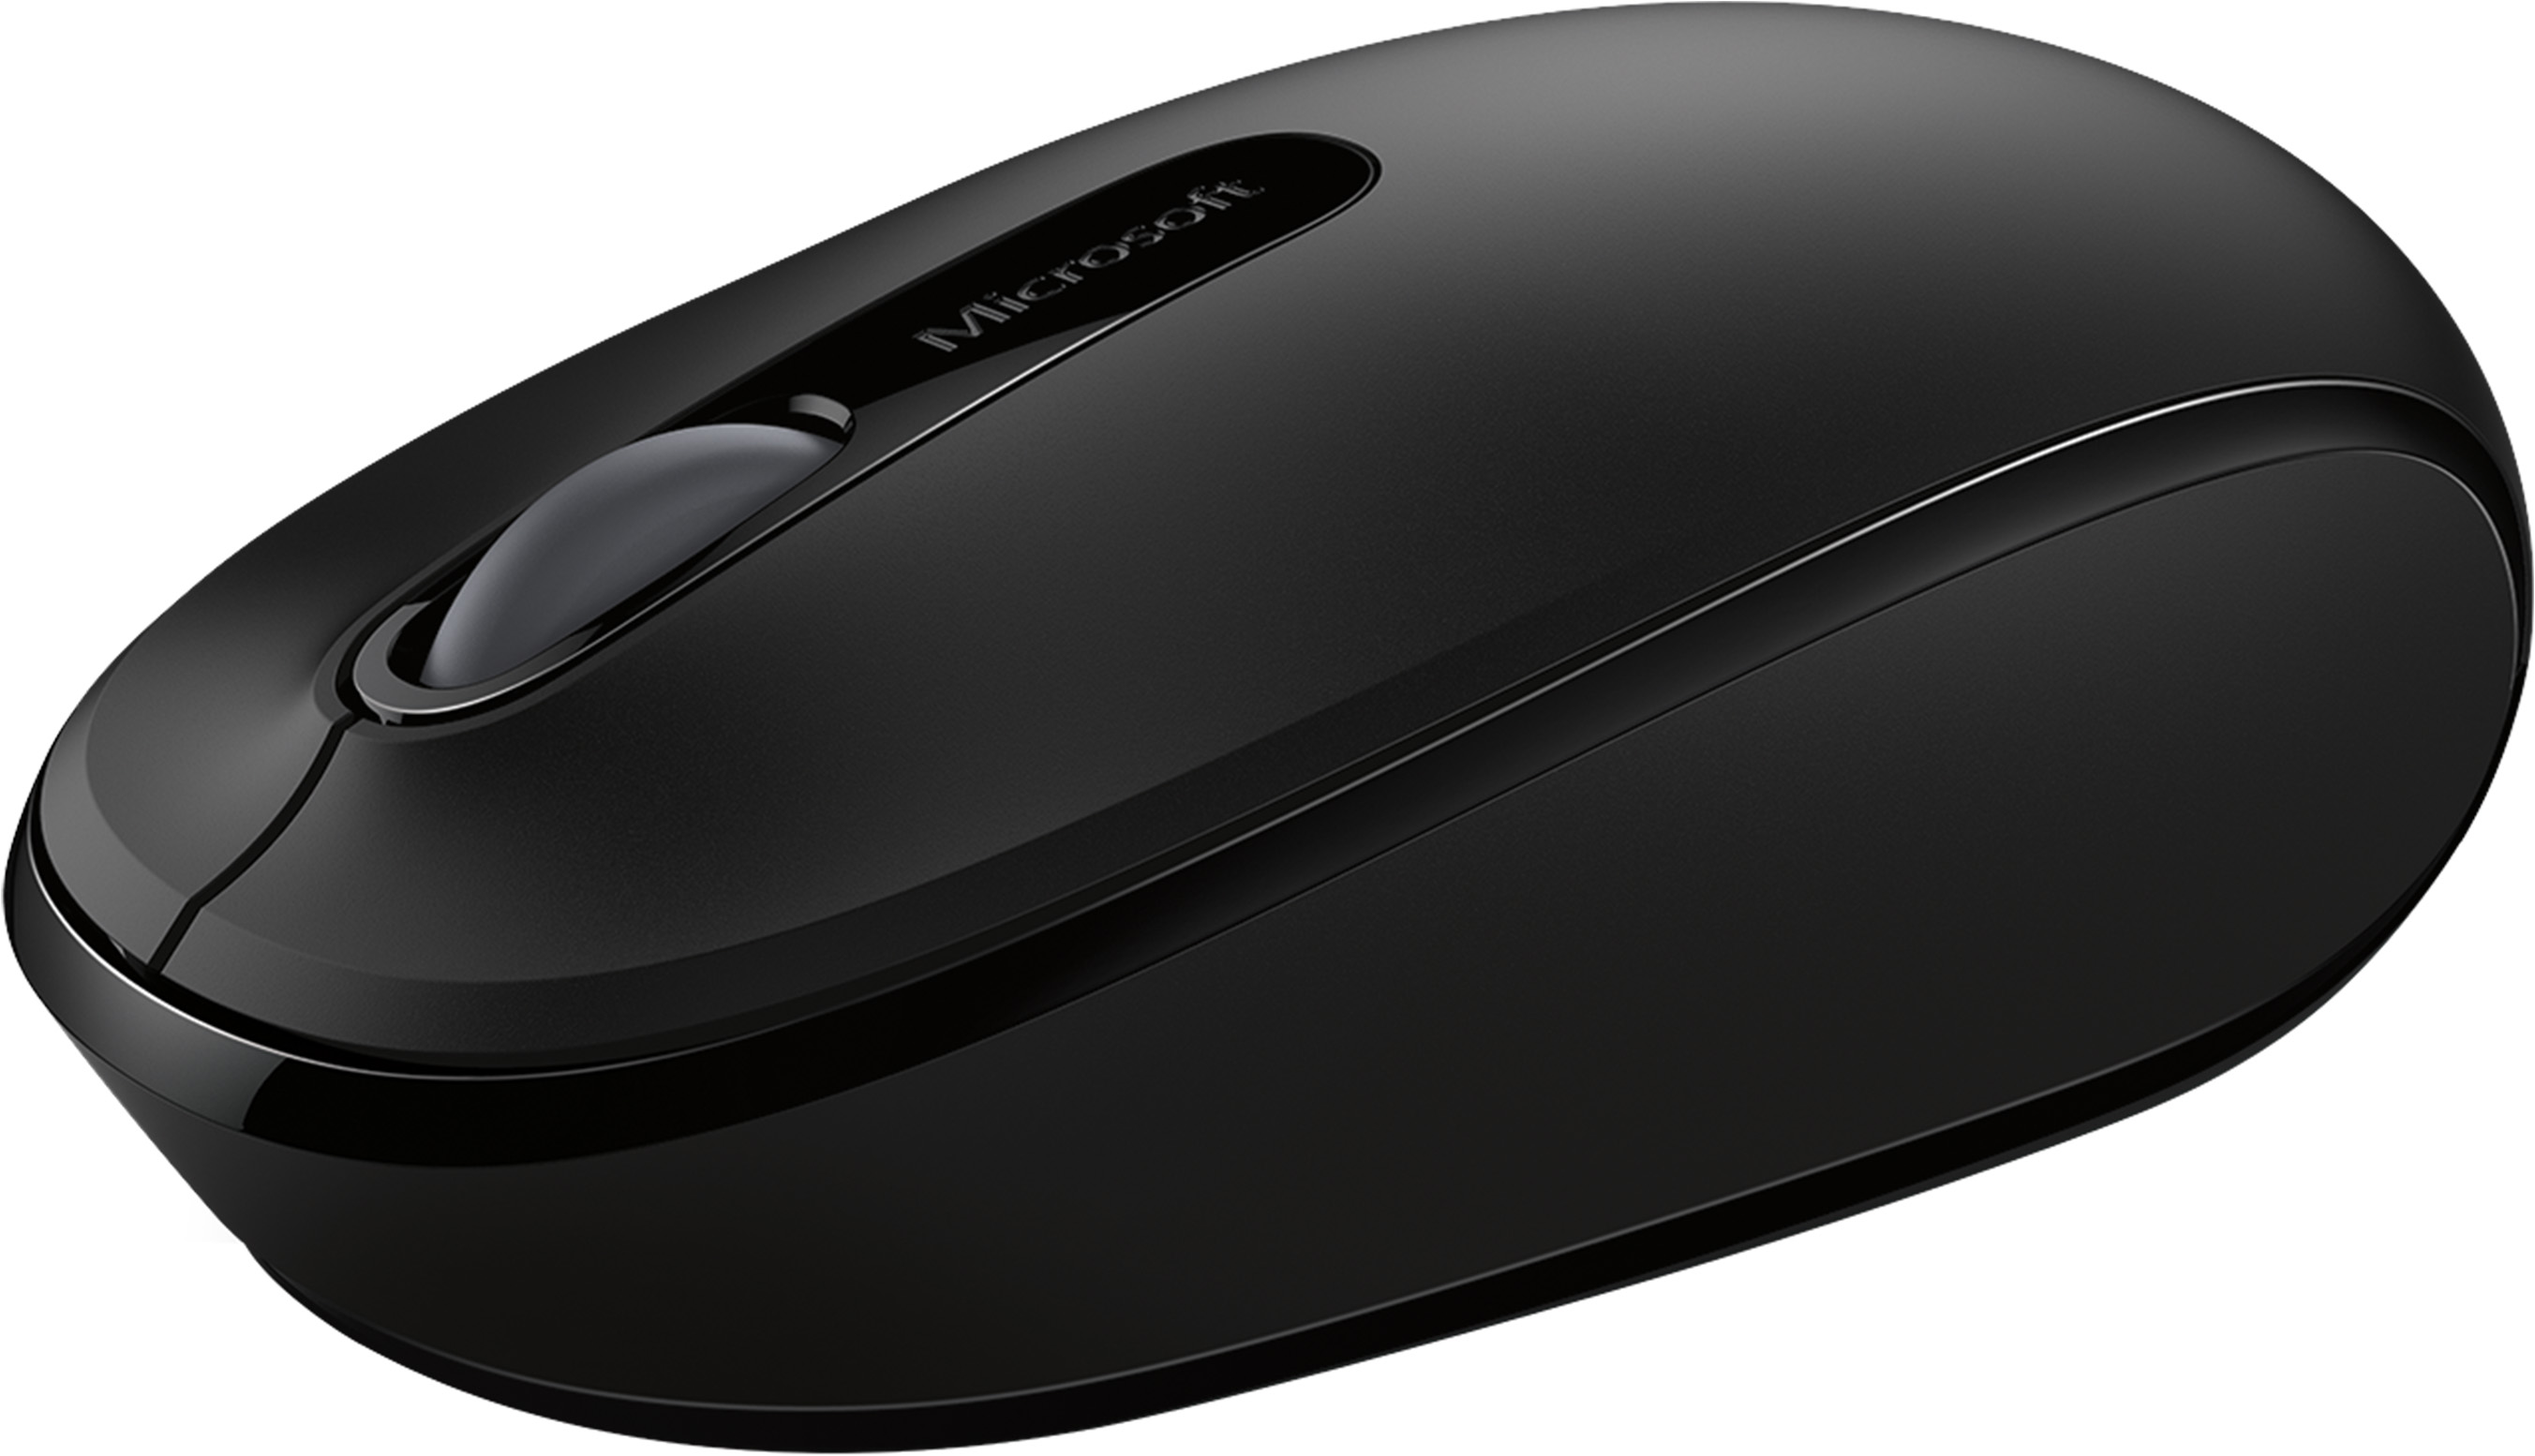 Microsoft Wireless Mobile Mouse 1850 (Black)